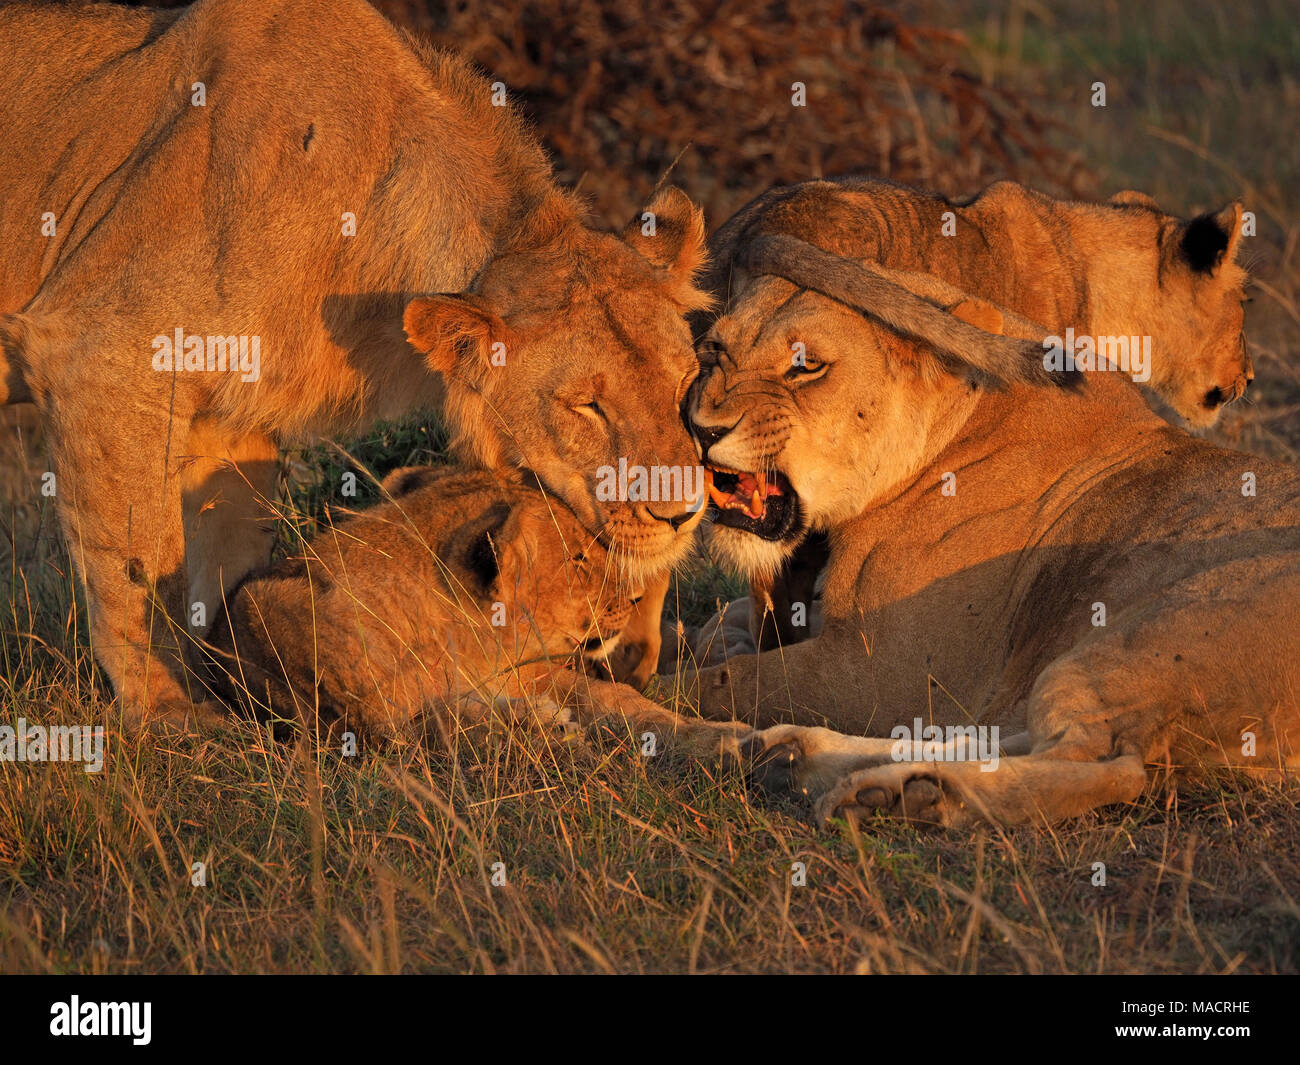 adult lioness snarls as young adult male approaches young cubs of pride contact grooming in pre-hunt ritual in Masai Mara Conservancies, Kenya, Africa - Stock Image